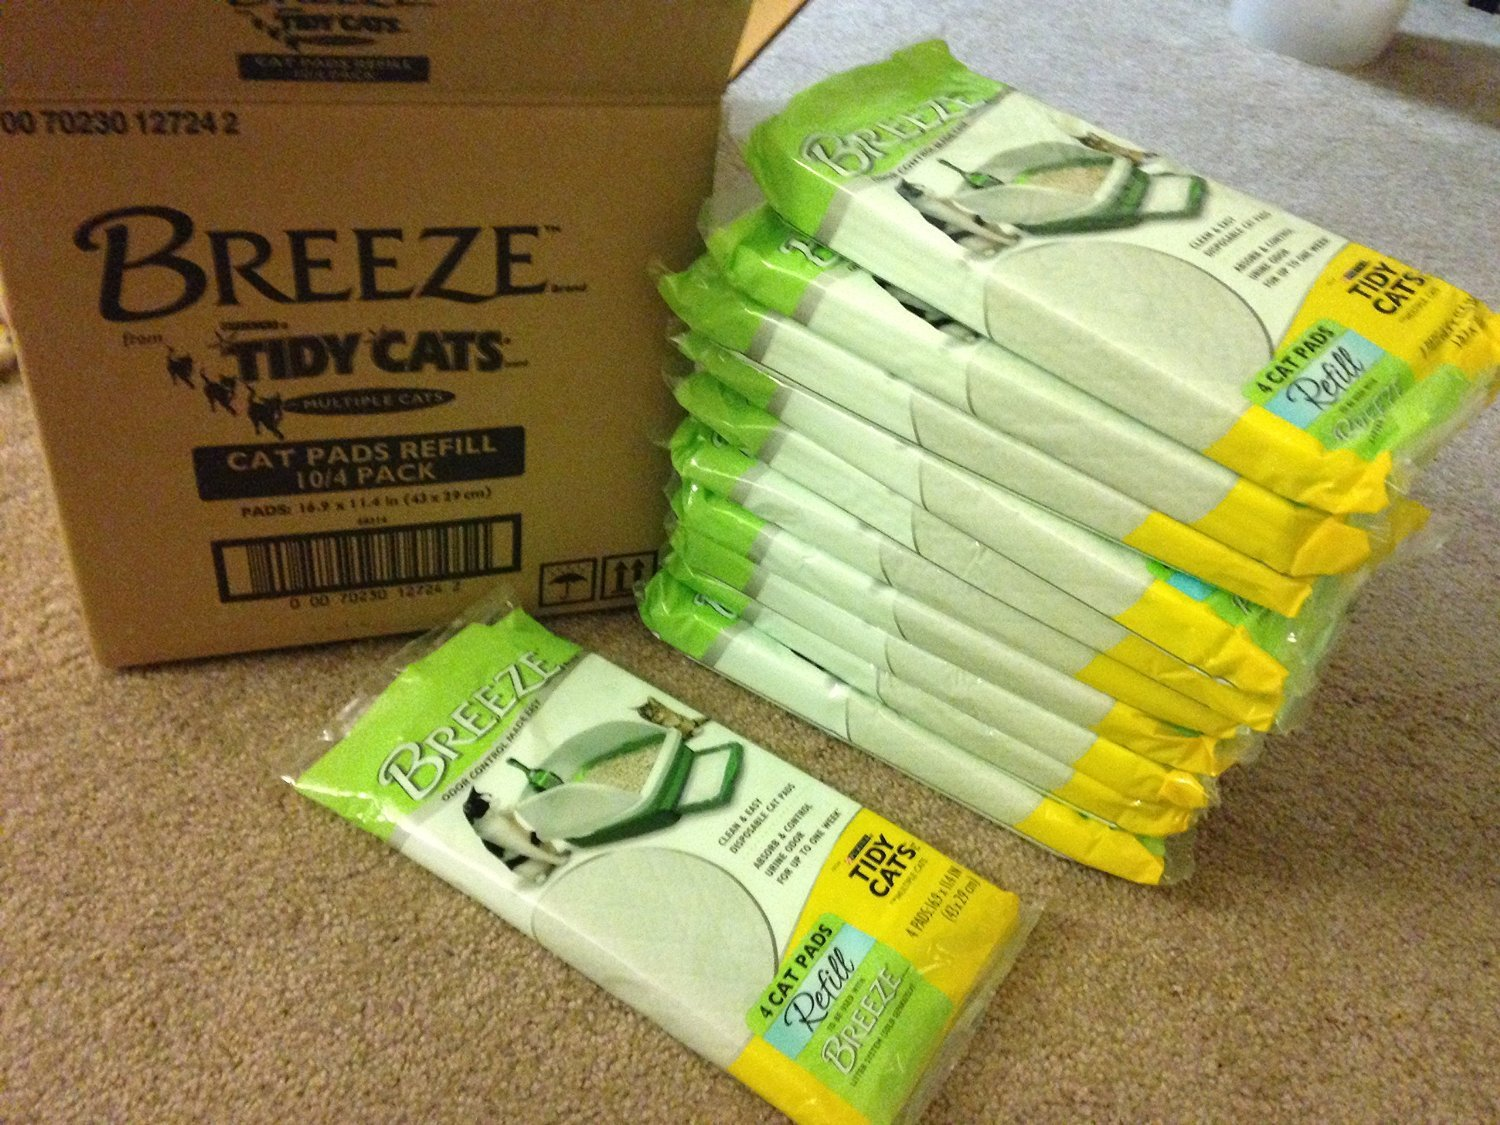 Tidy Cats 4 Count Breeze Litter Pad Refill (Pack of 20)